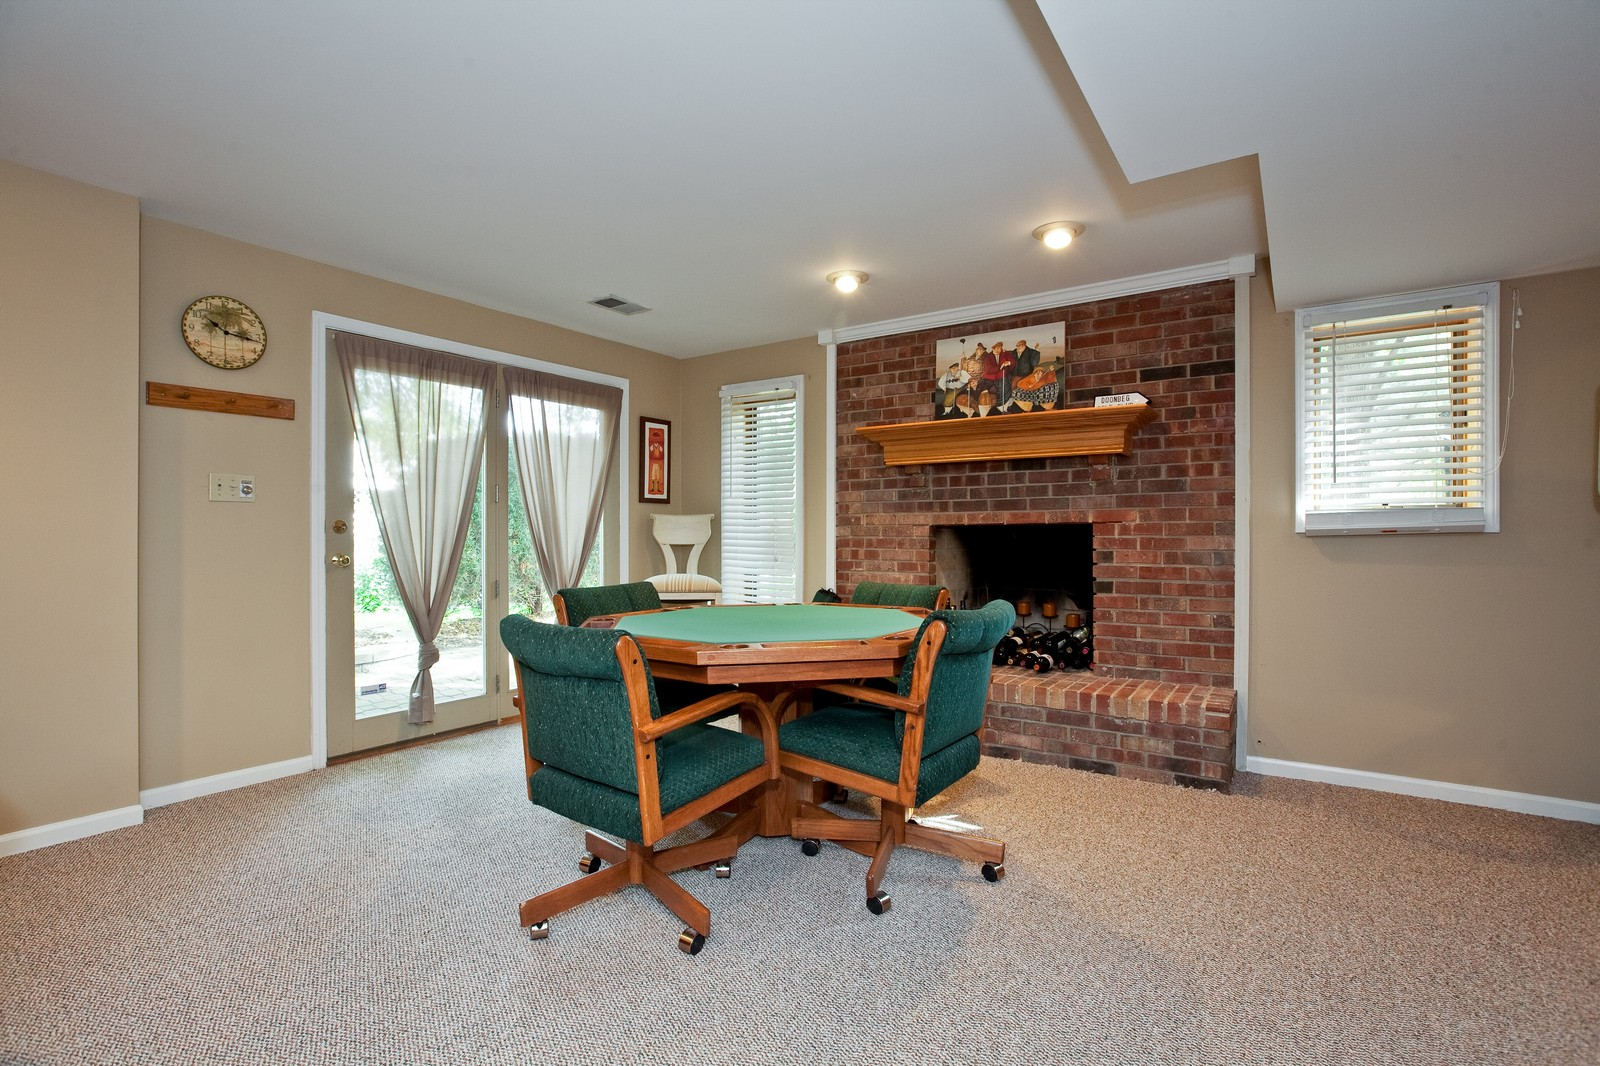 Real Estate Photography - 1031 W. 119th St, Lemont, IL, 60439 - Recreational Area